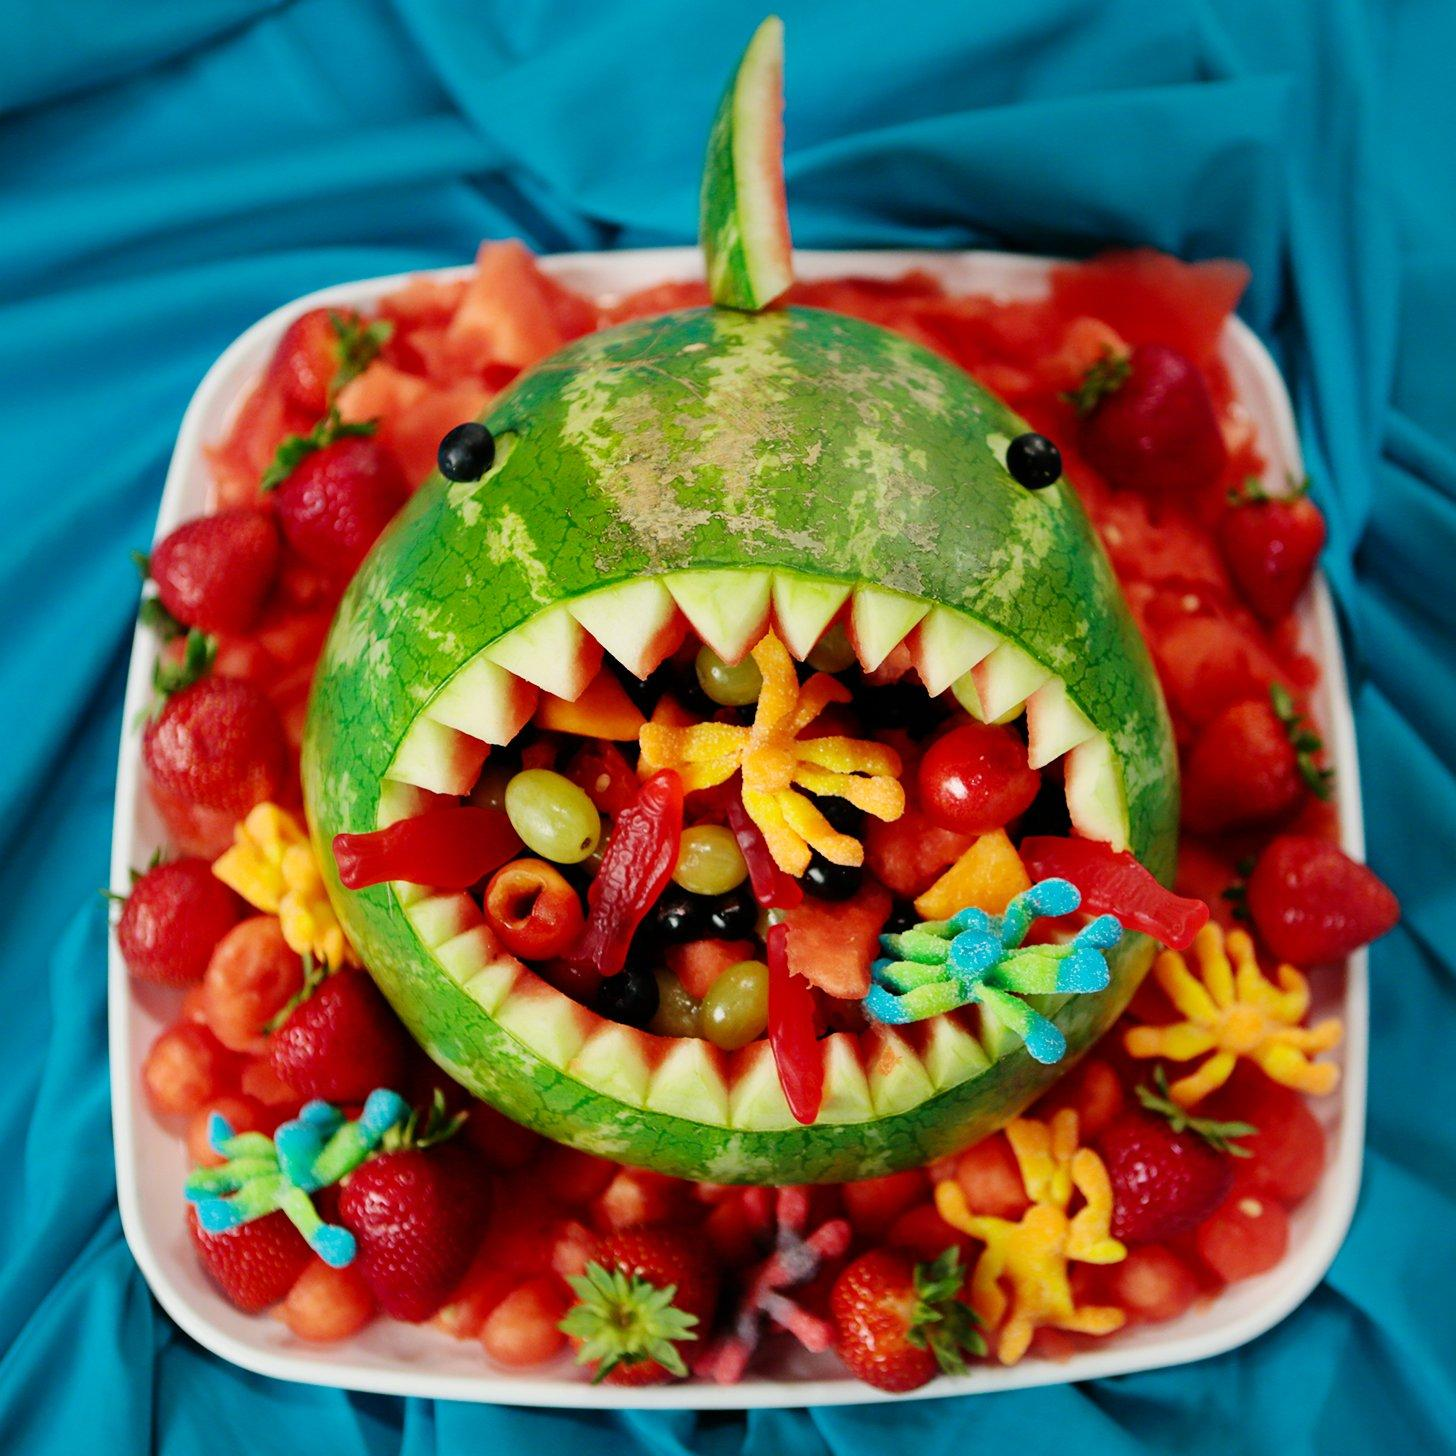 Watermelon special fruitcarving